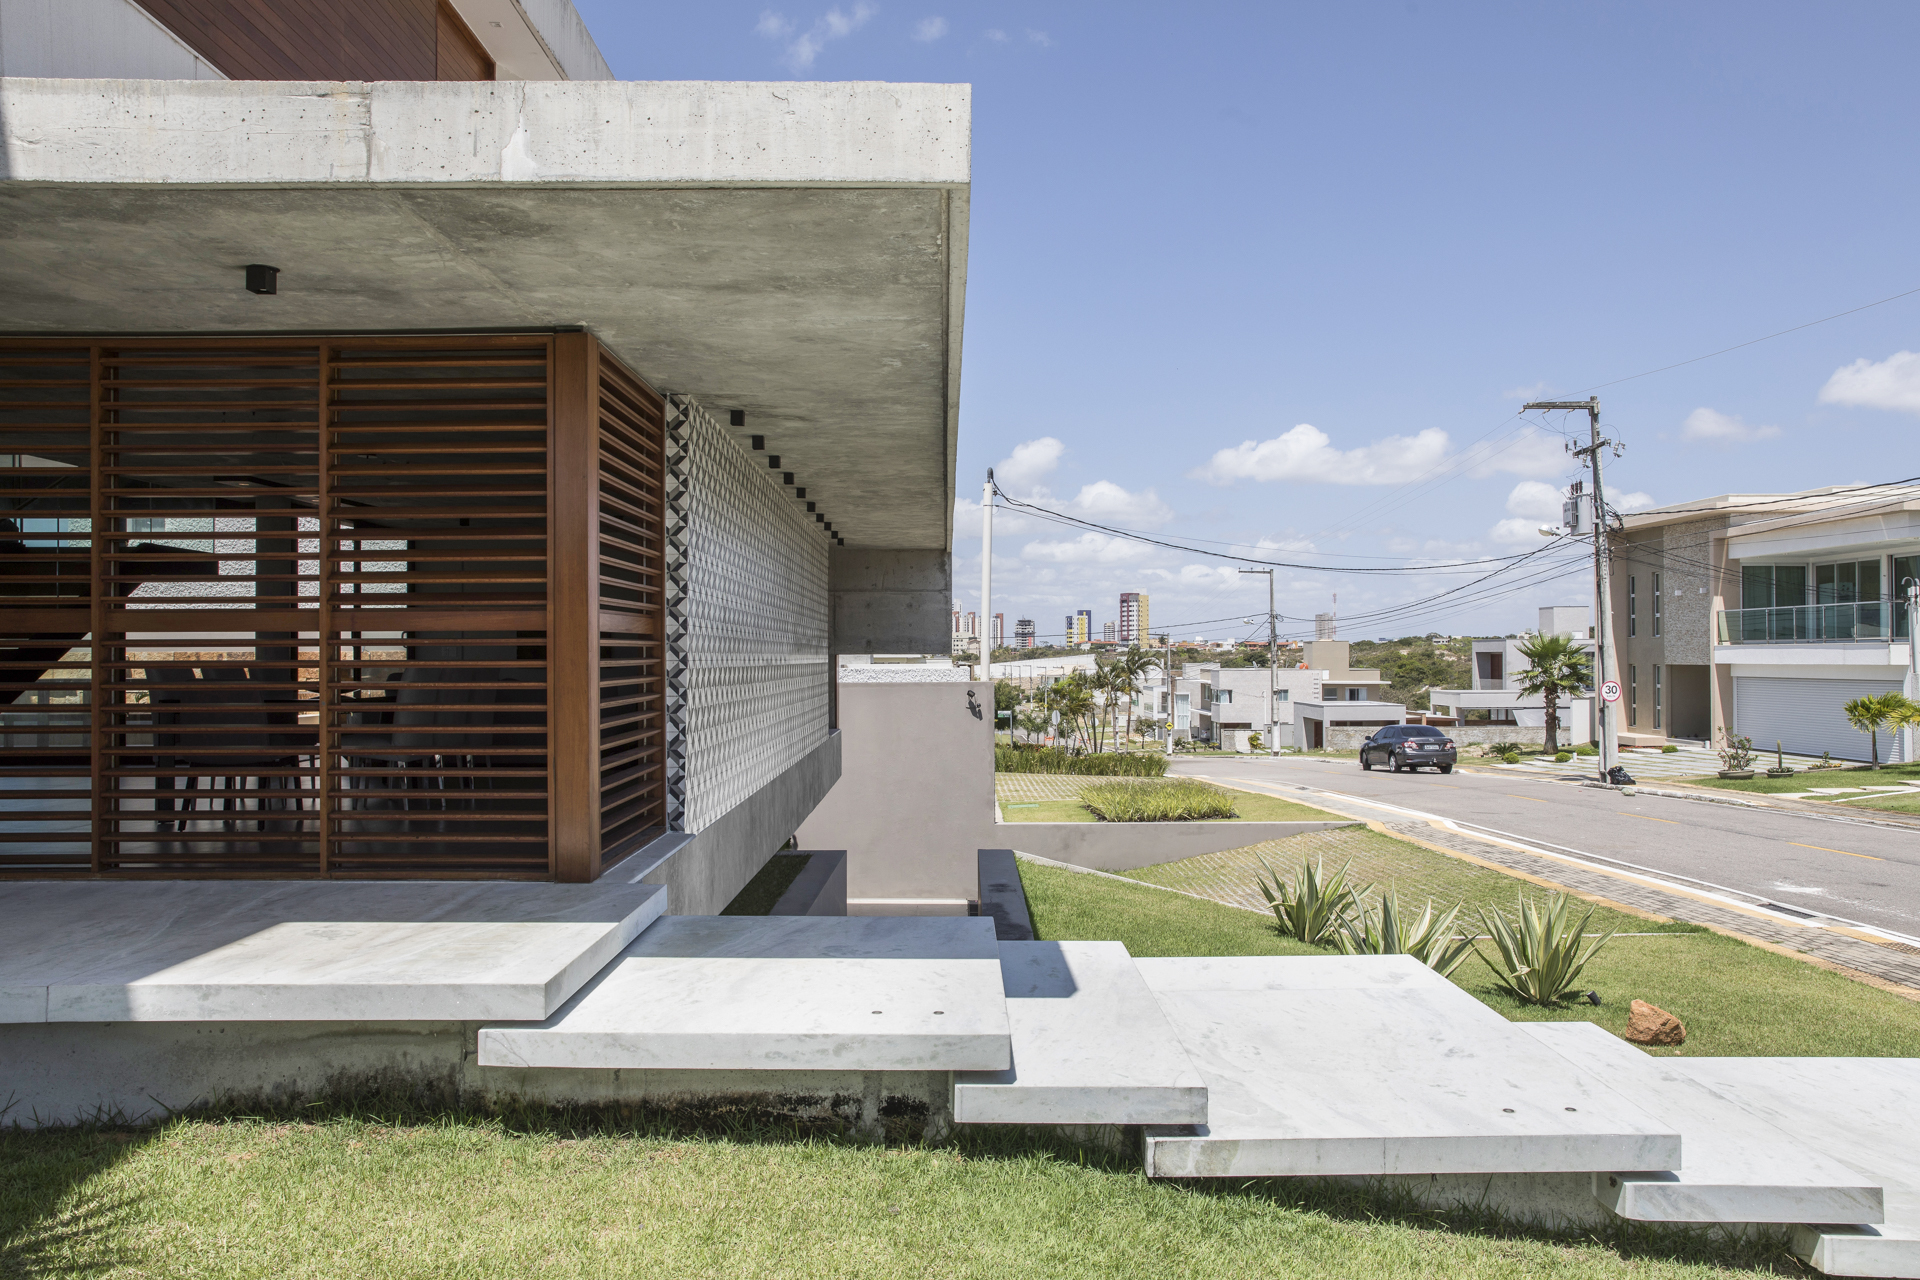 10_CASA_IF_-_Martins_Lucena_Arquitetos-17.jpg